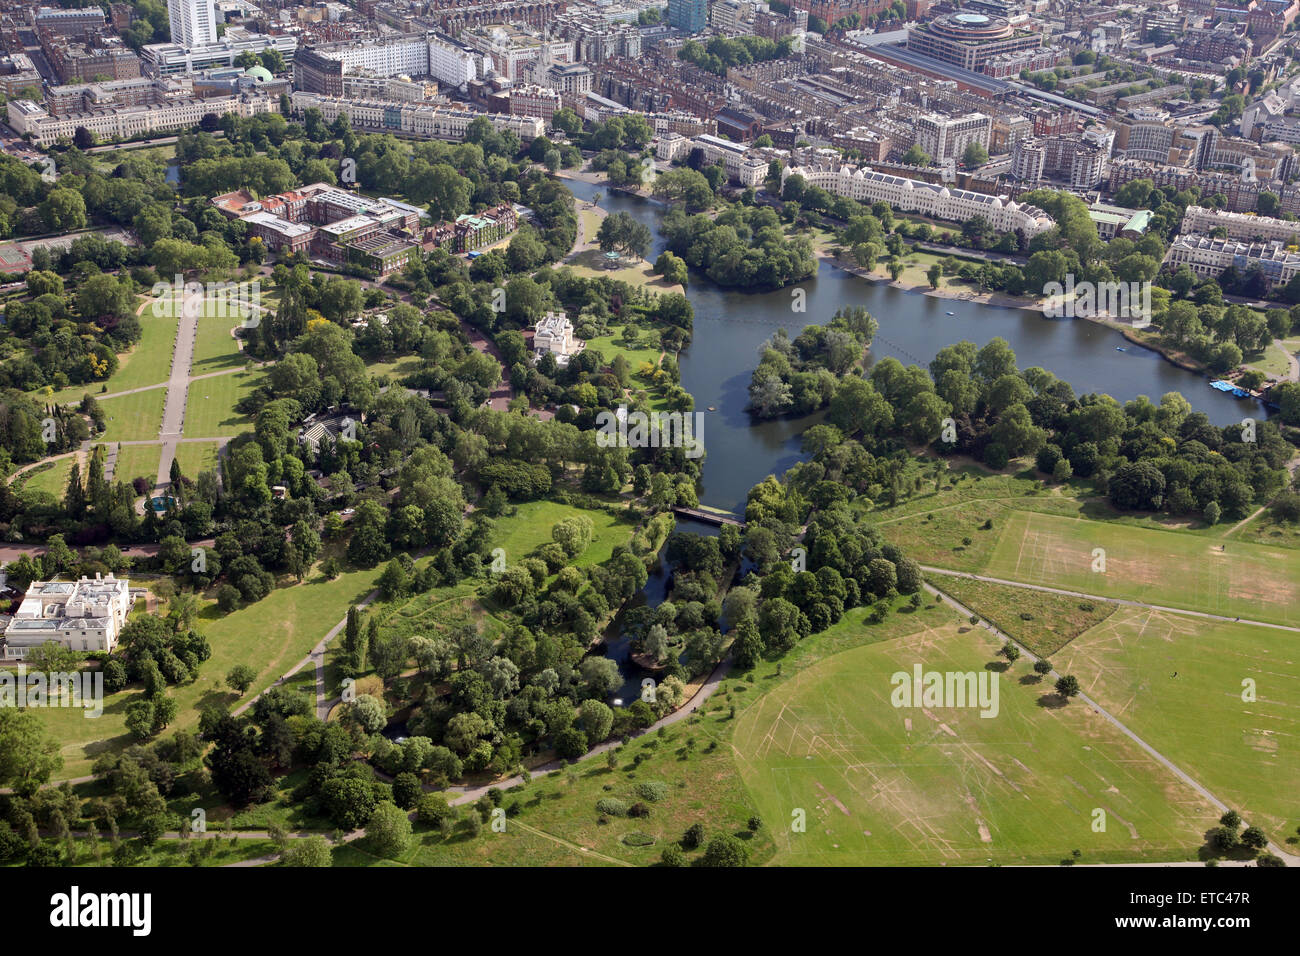 aerial view of Regents Park in London, UK Stock Photo